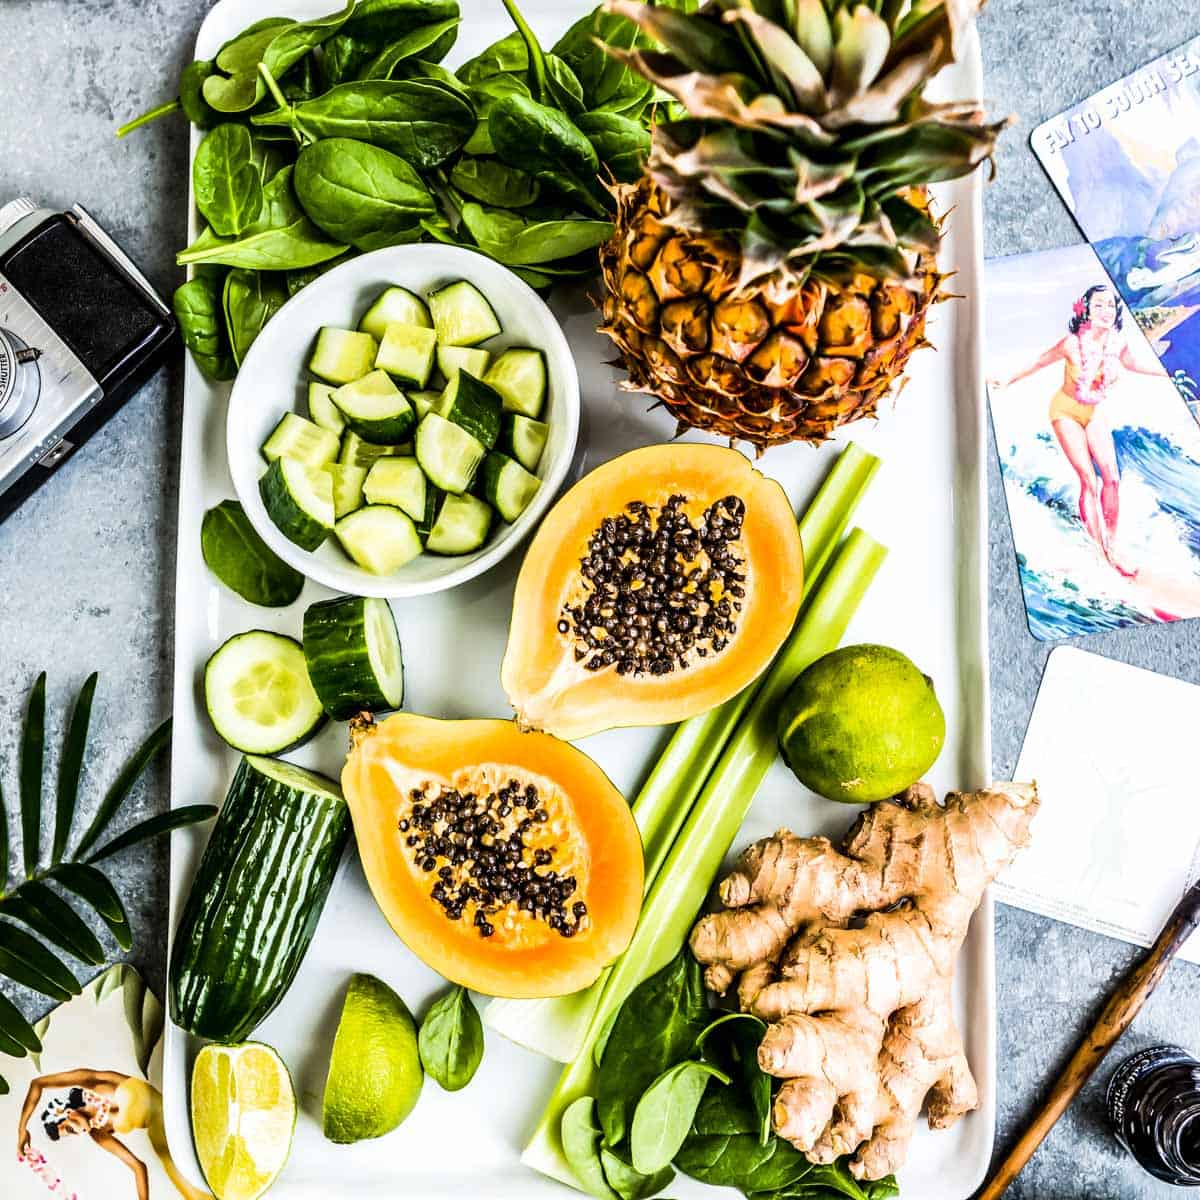 these ingredients are my go to home remedies for bloating